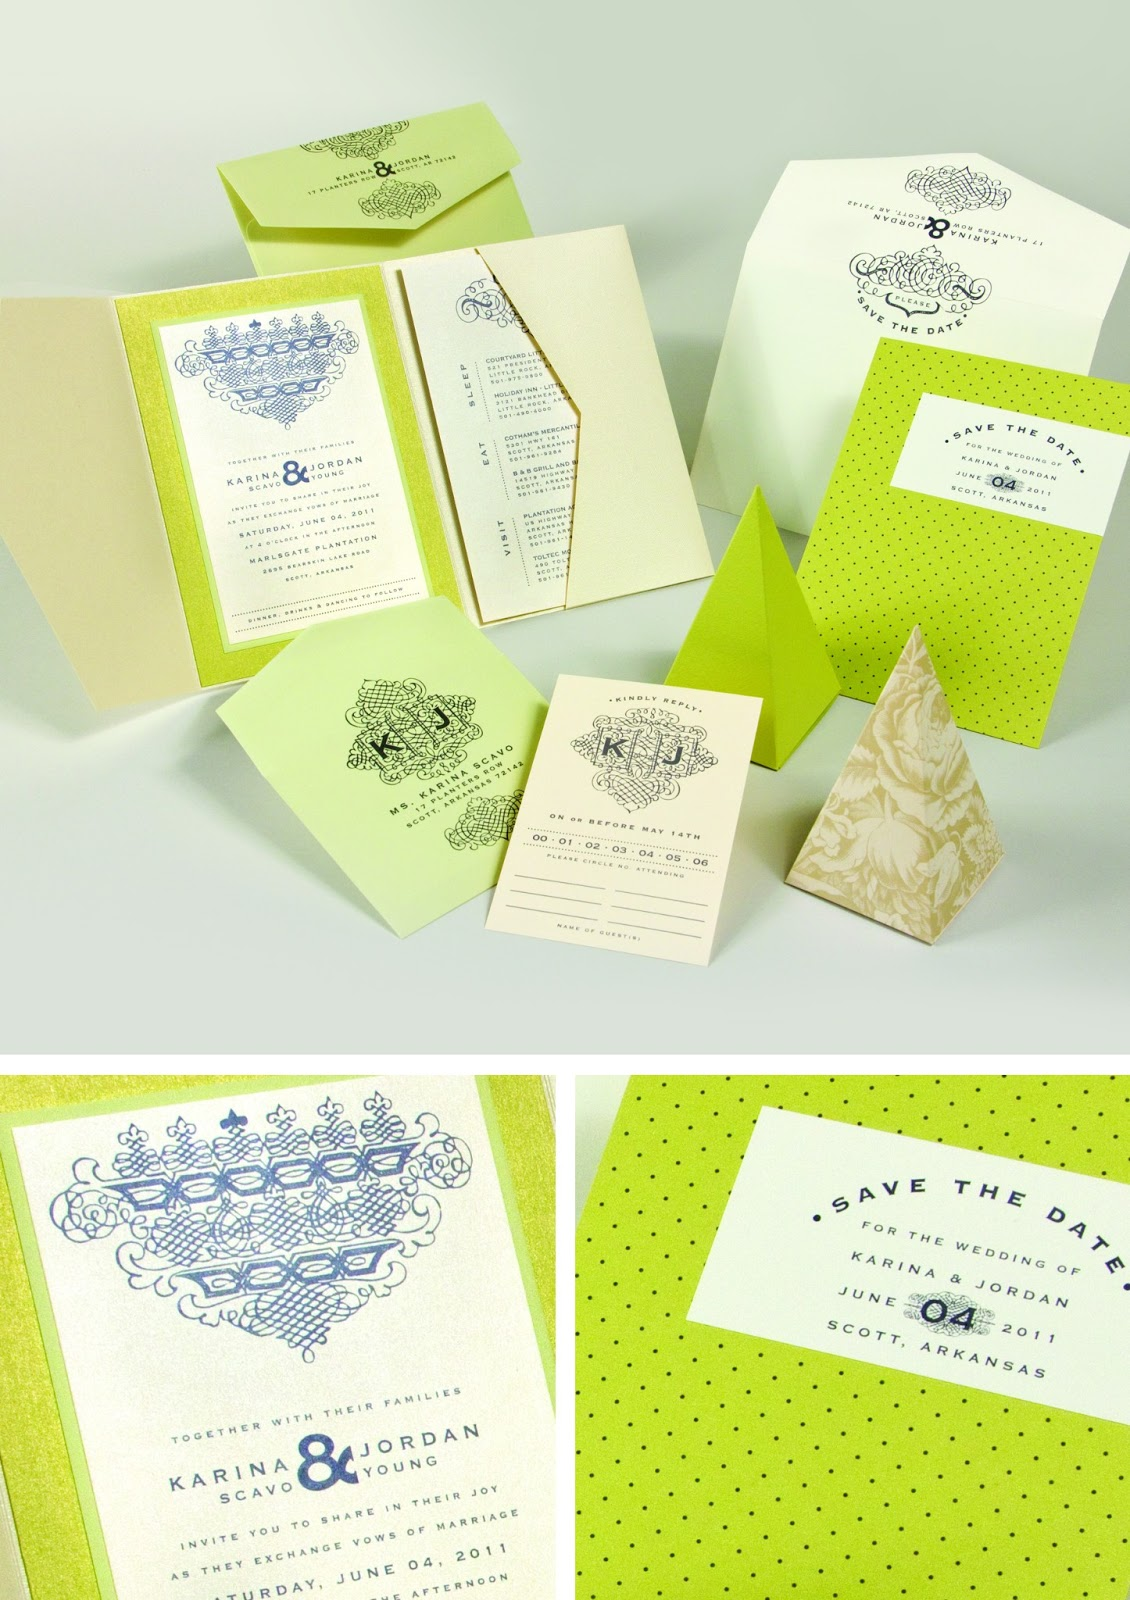 Envelopments Wedding InvitationsDestination Weddings   Envelopments Wedding Invitations. Envelopments Wedding Invitations. Home Design Ideas